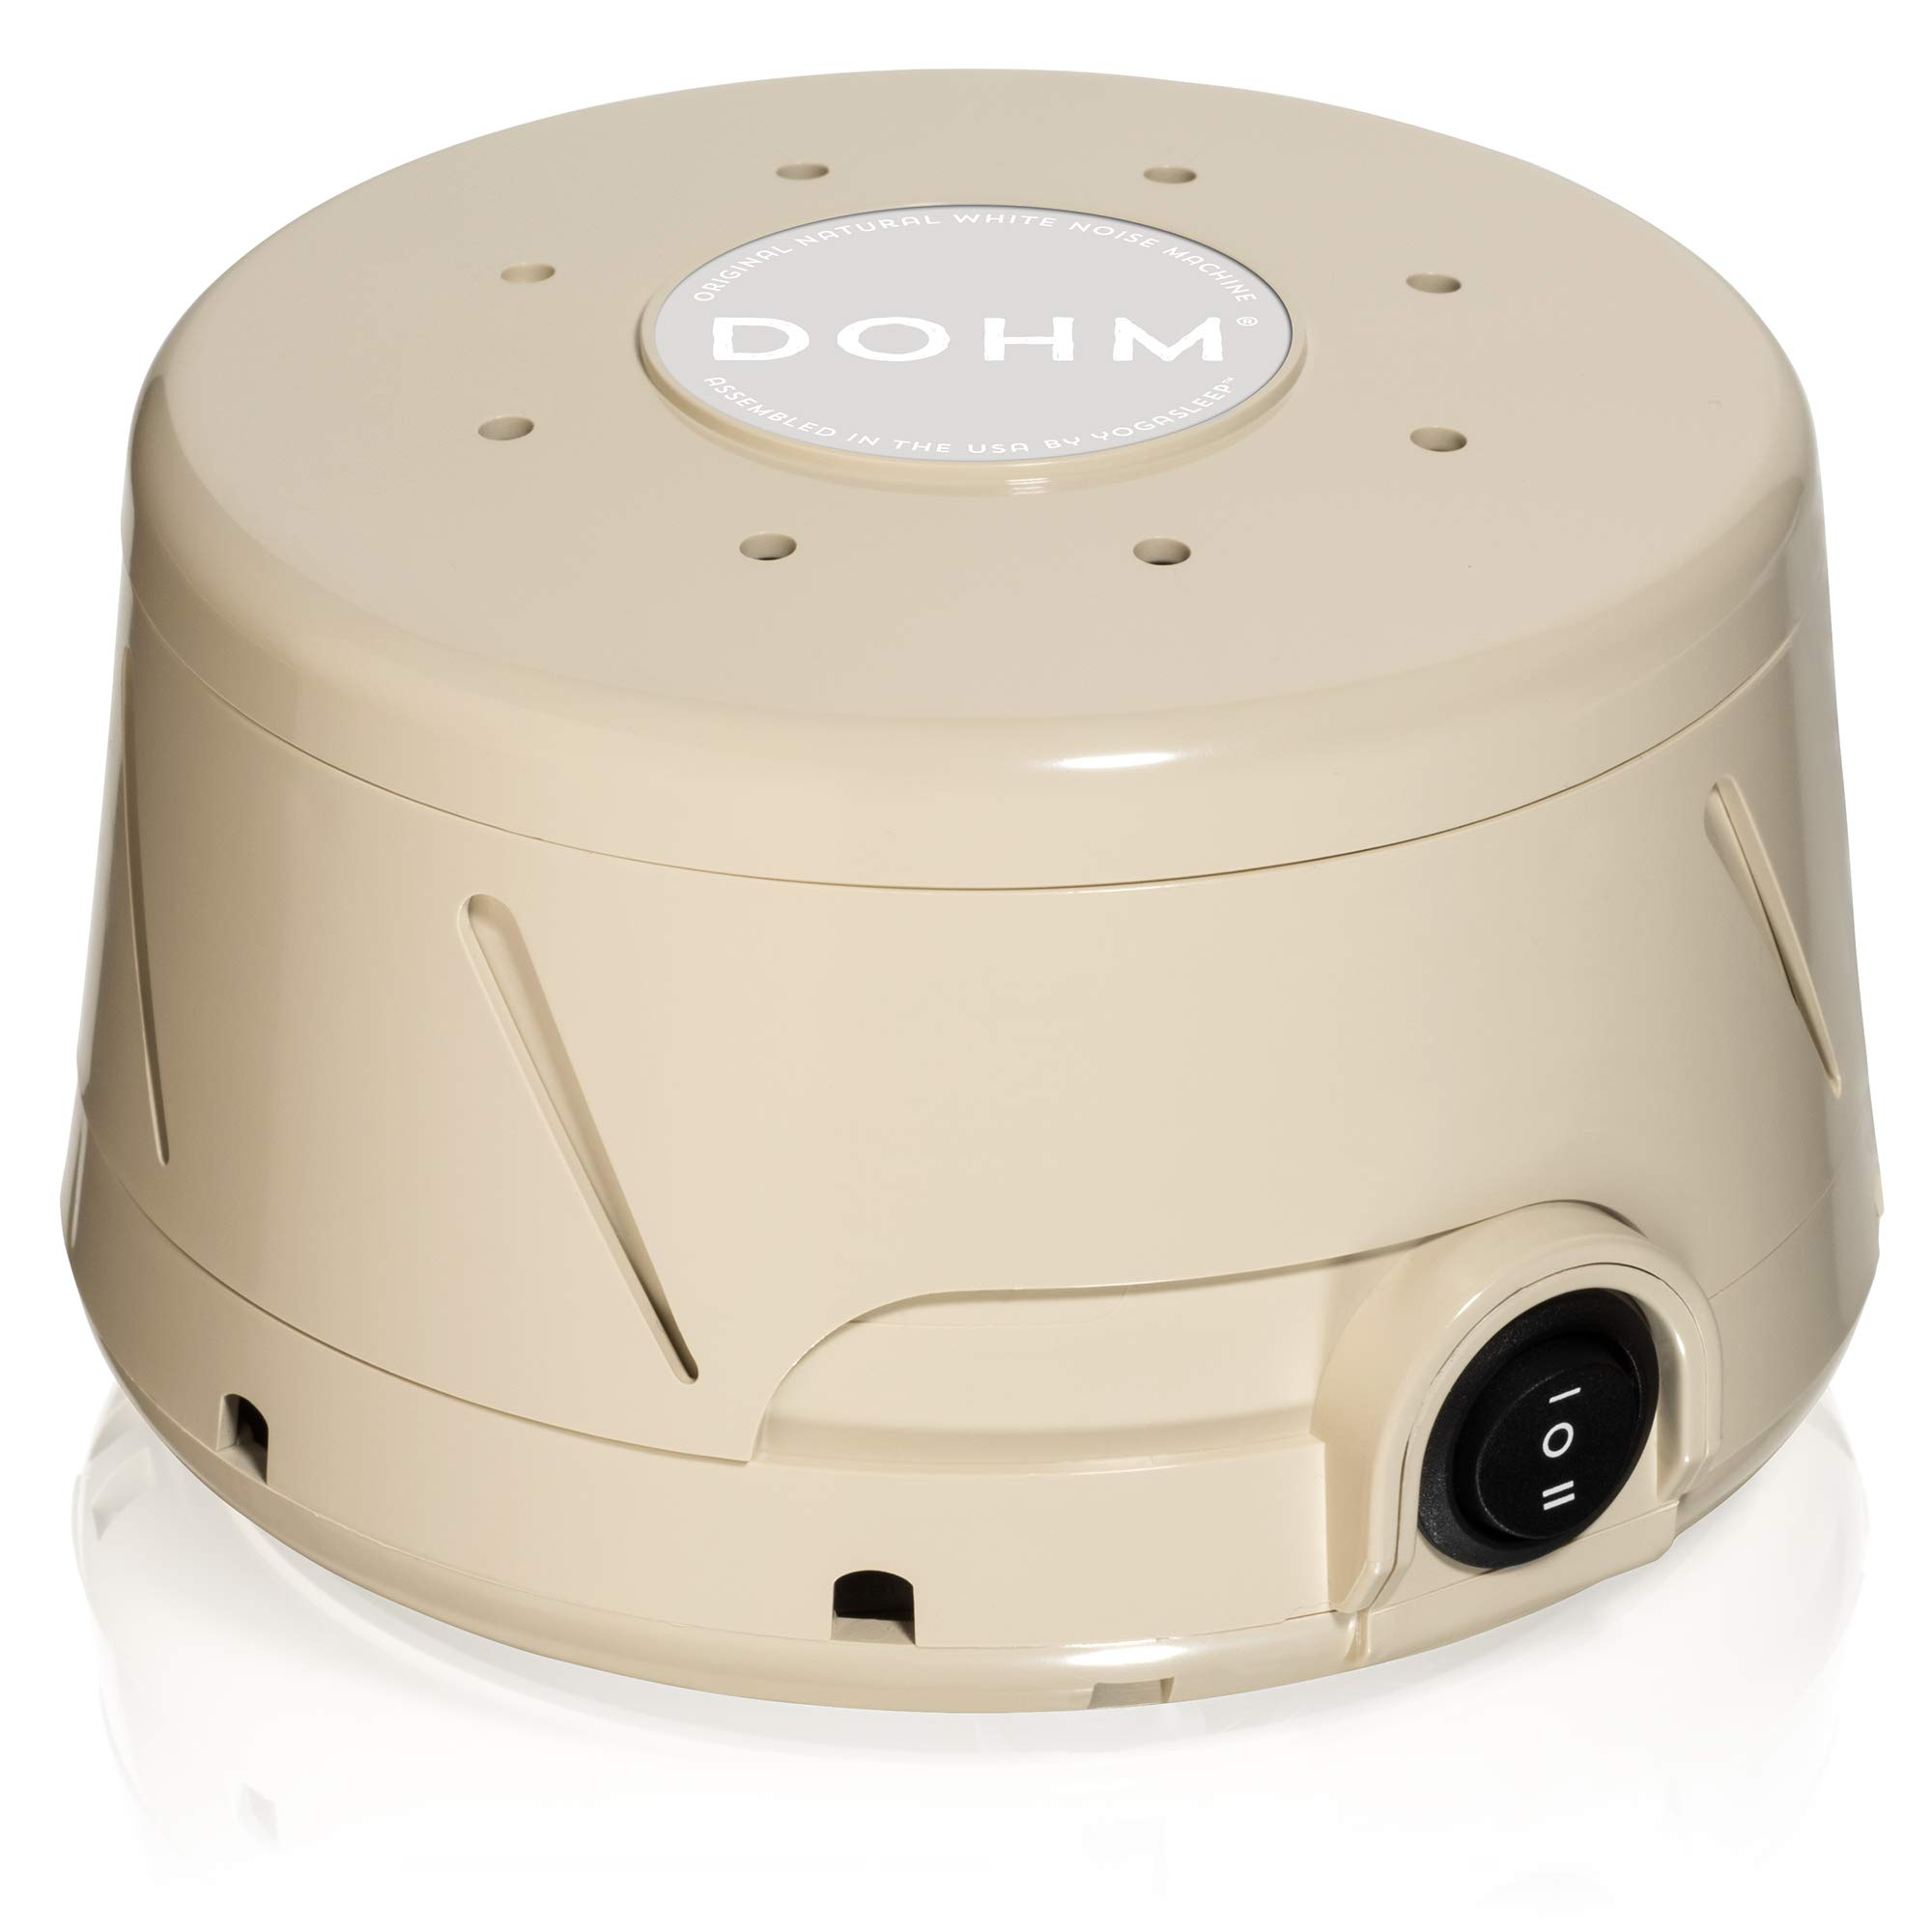 Yogasleep Dohm Classic (Tan) The Original White Noise Machine | Soothing Natural Sound from a Real Fan | Noise Cancelling | Sleep Therapy, Office Privacy, Travel | For Adults, Baby | 101 Night Trial